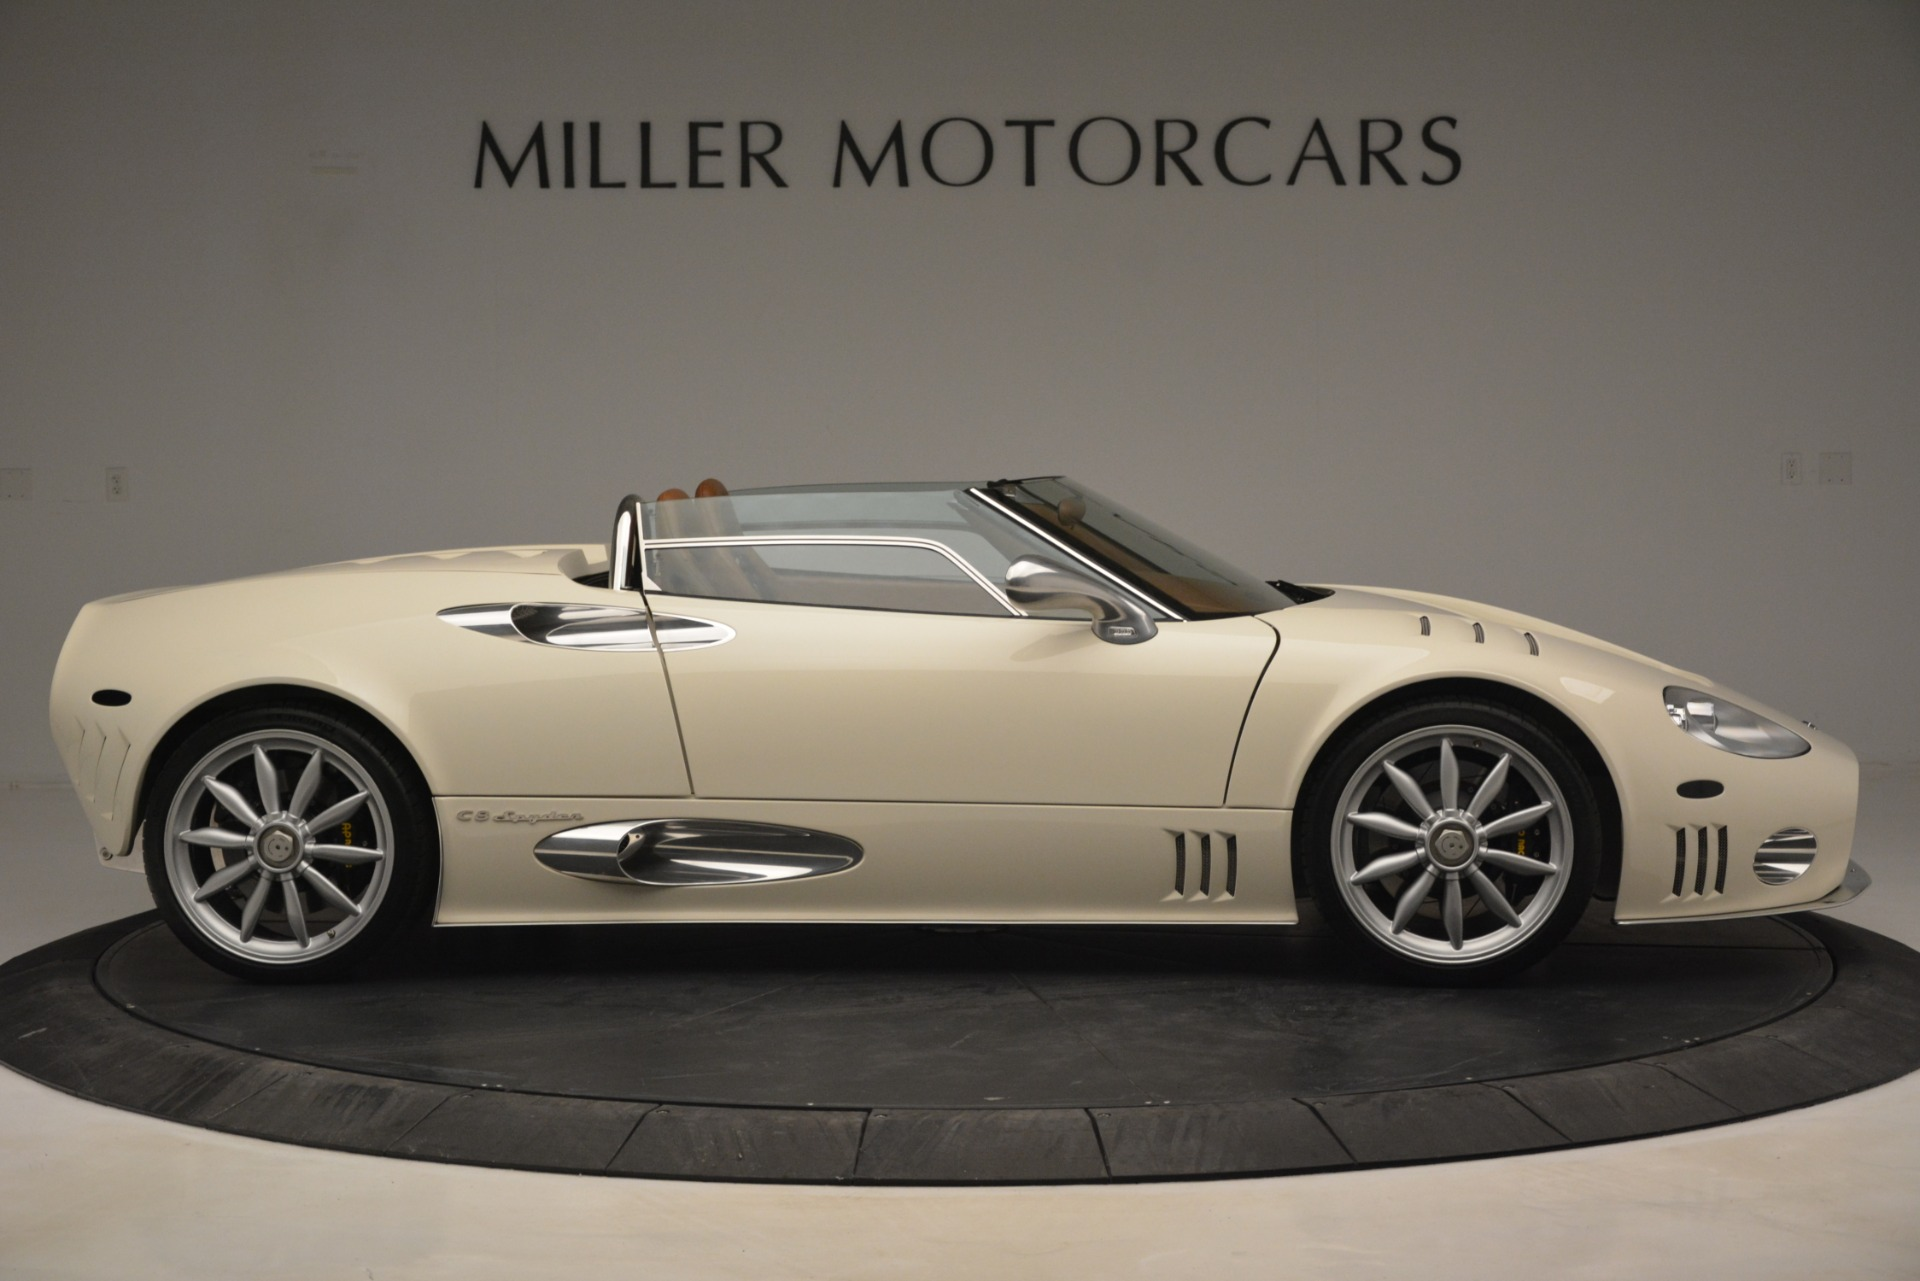 Used 2006 Spyker C8 Spyder  For Sale In Greenwich, CT 1661_p9